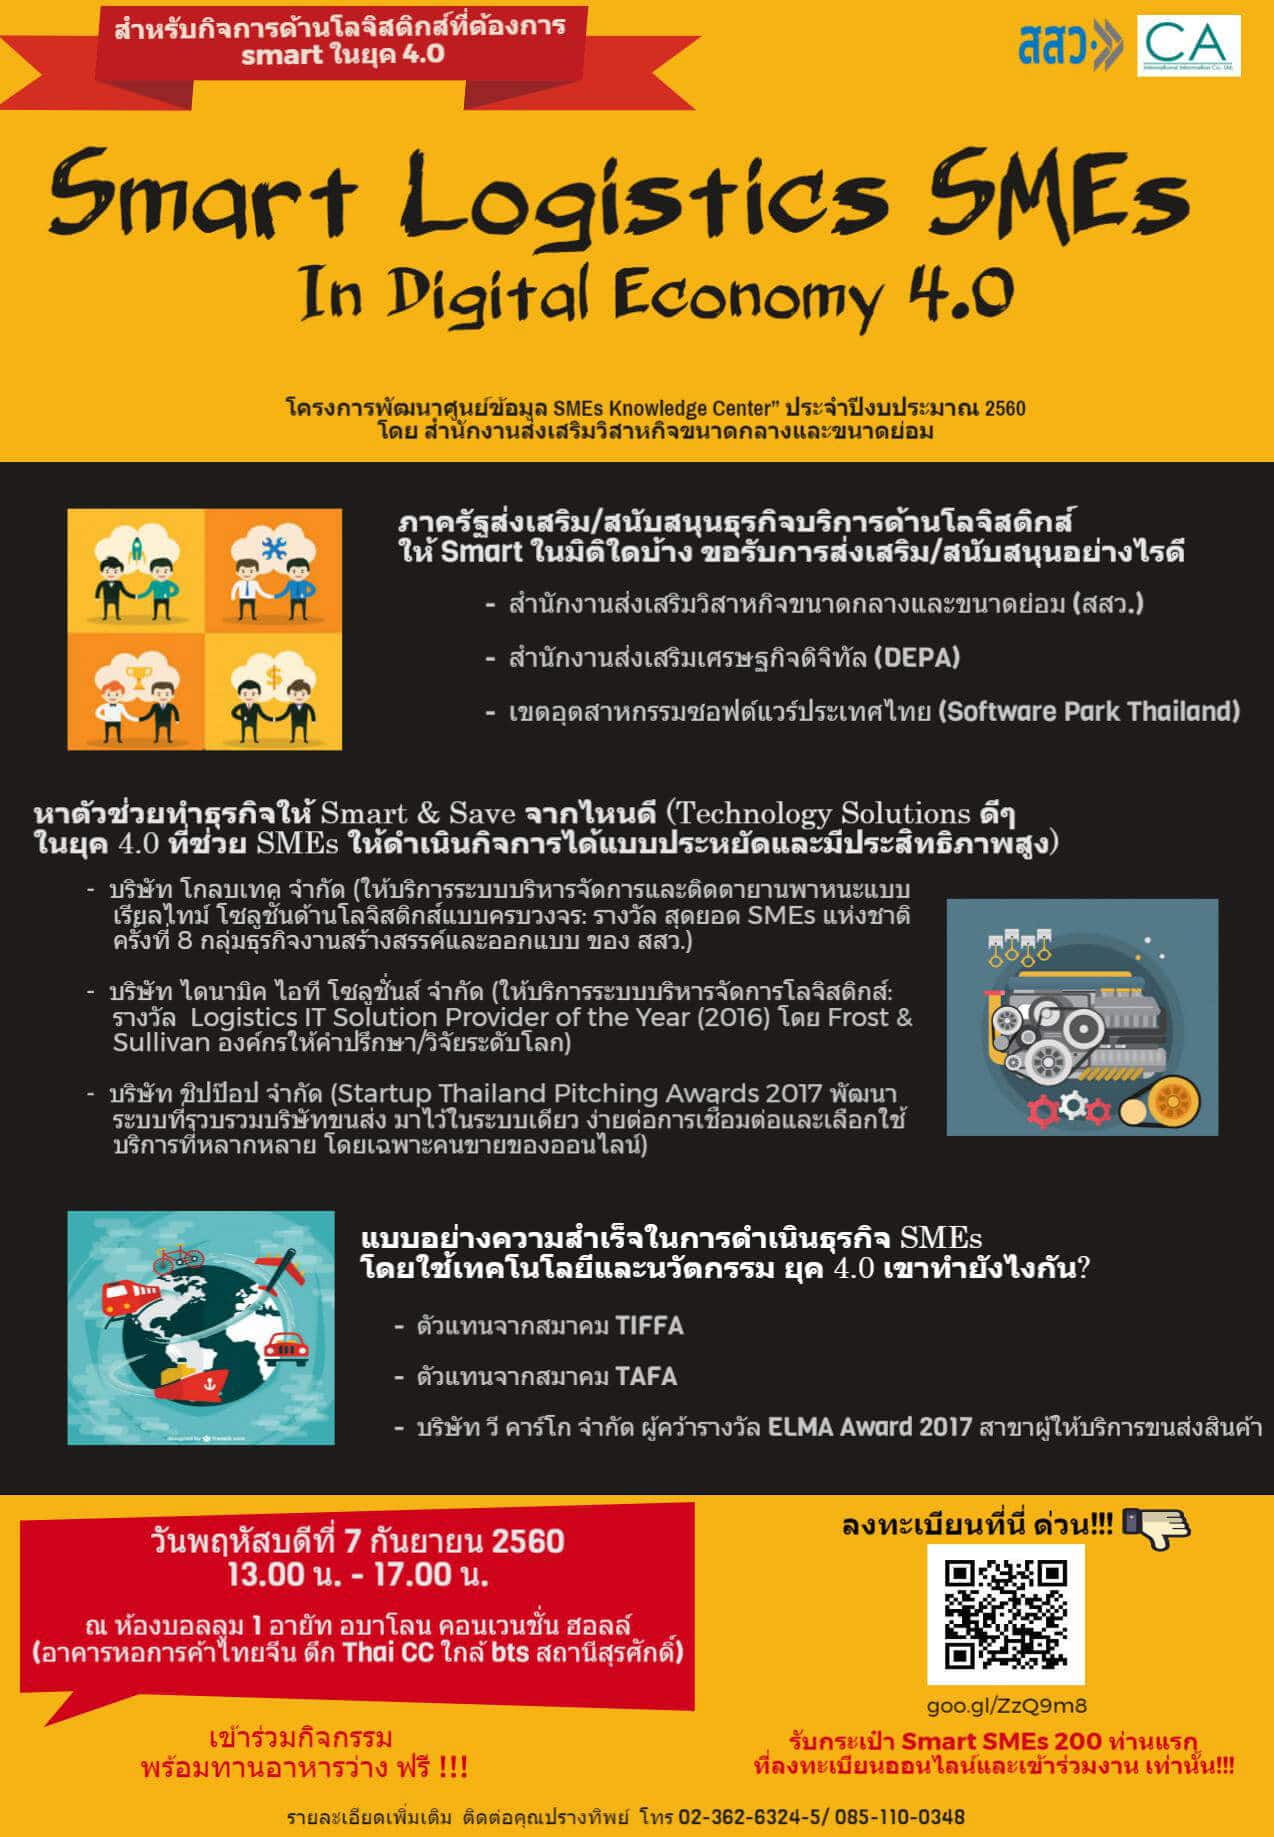 Smart Logistics SMEs In Digital Economy 4.0